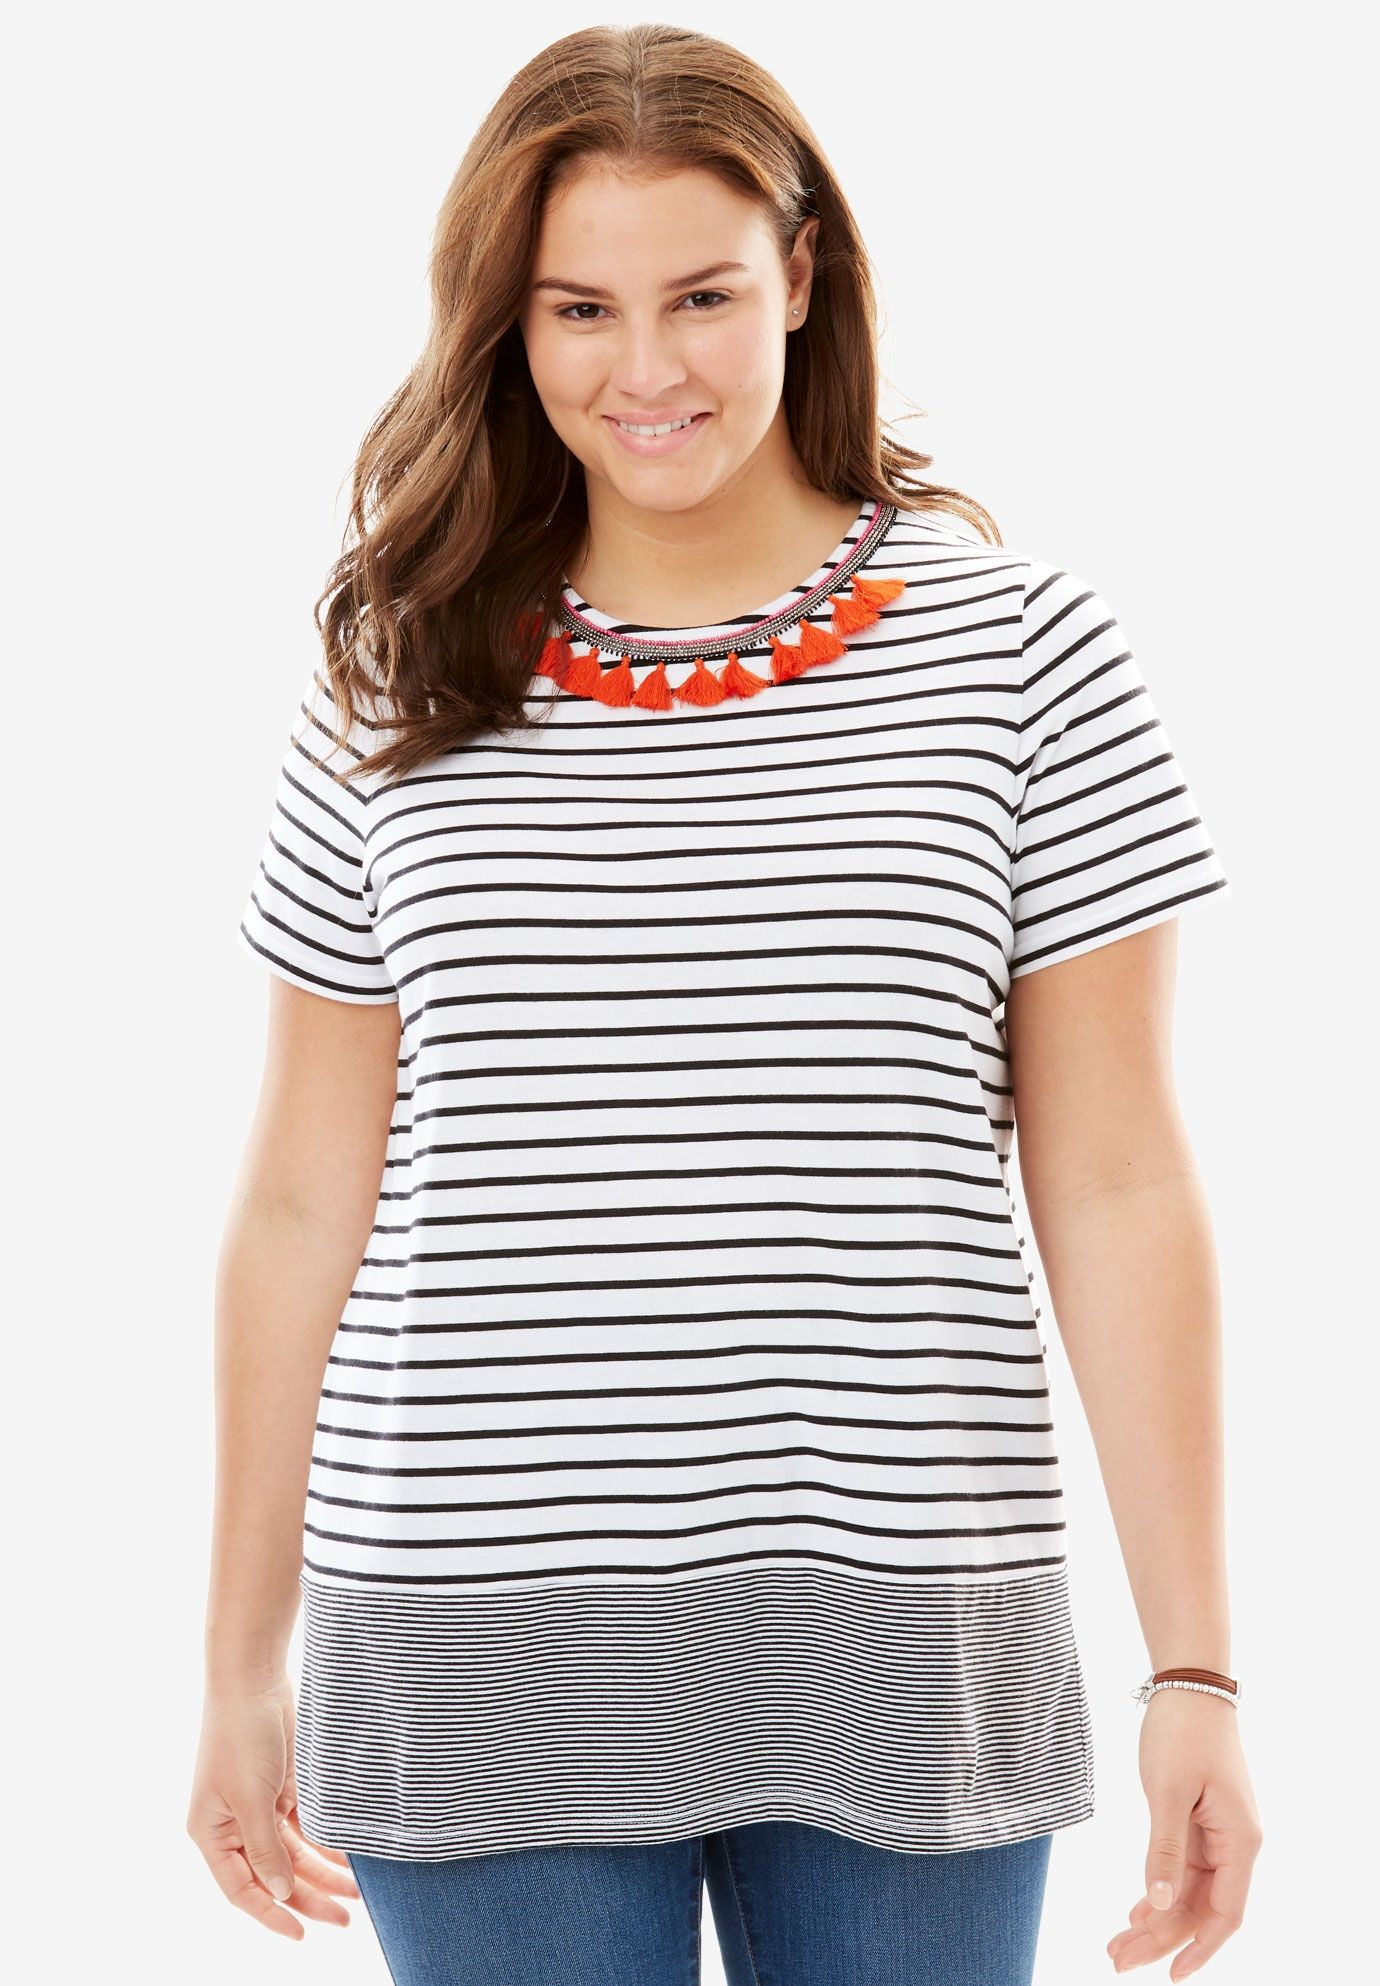 Tassel Accent Striped Tee, Black White Multi, Hi Res